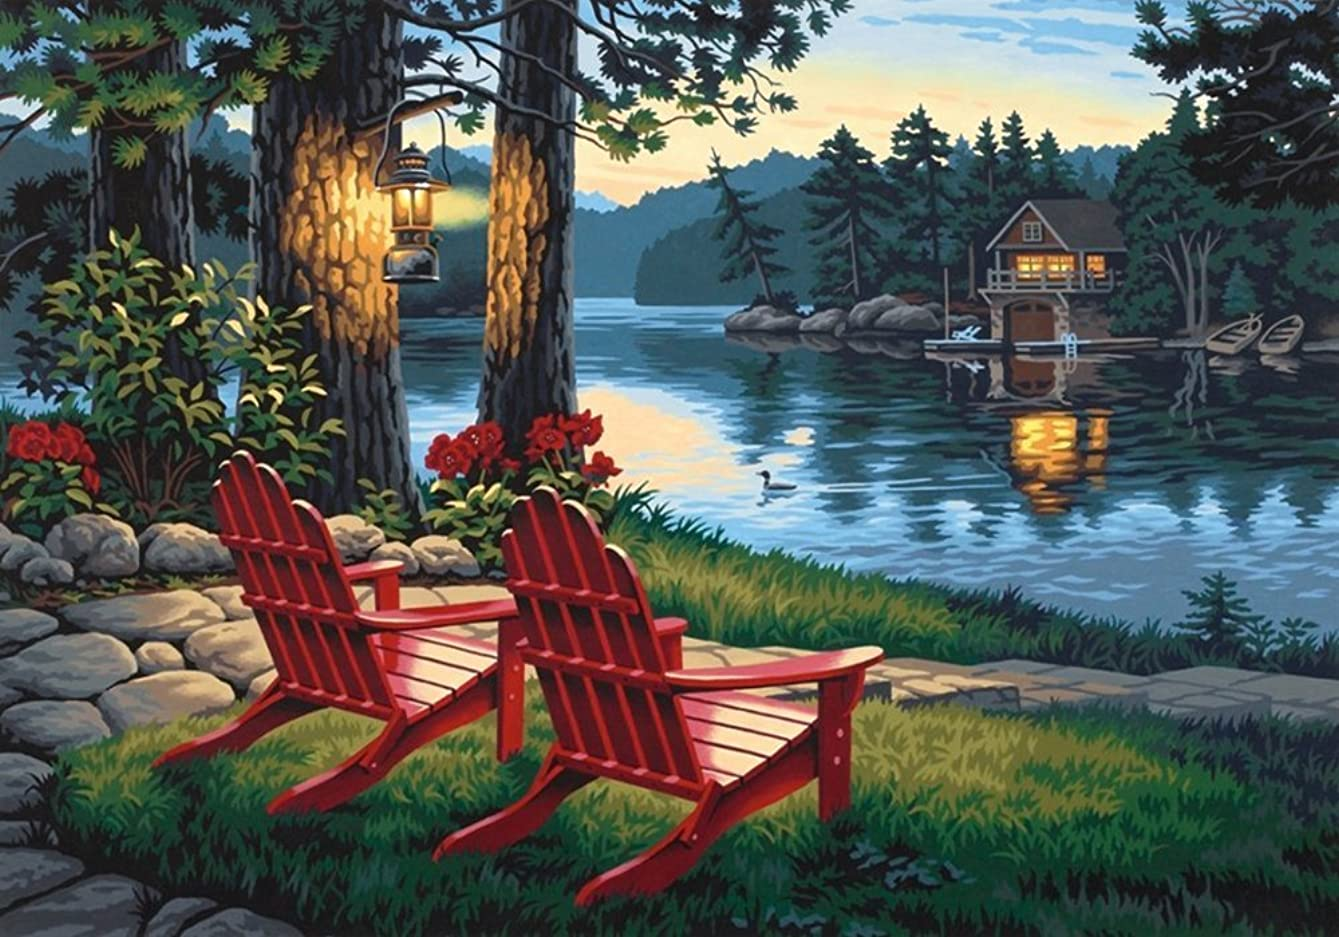 YXQSED [Wooden Framed] DIY Oil Painting Paint by Number Kit for Adult- Adirondack Lake Evening 16x20 Inch plfcfa800165